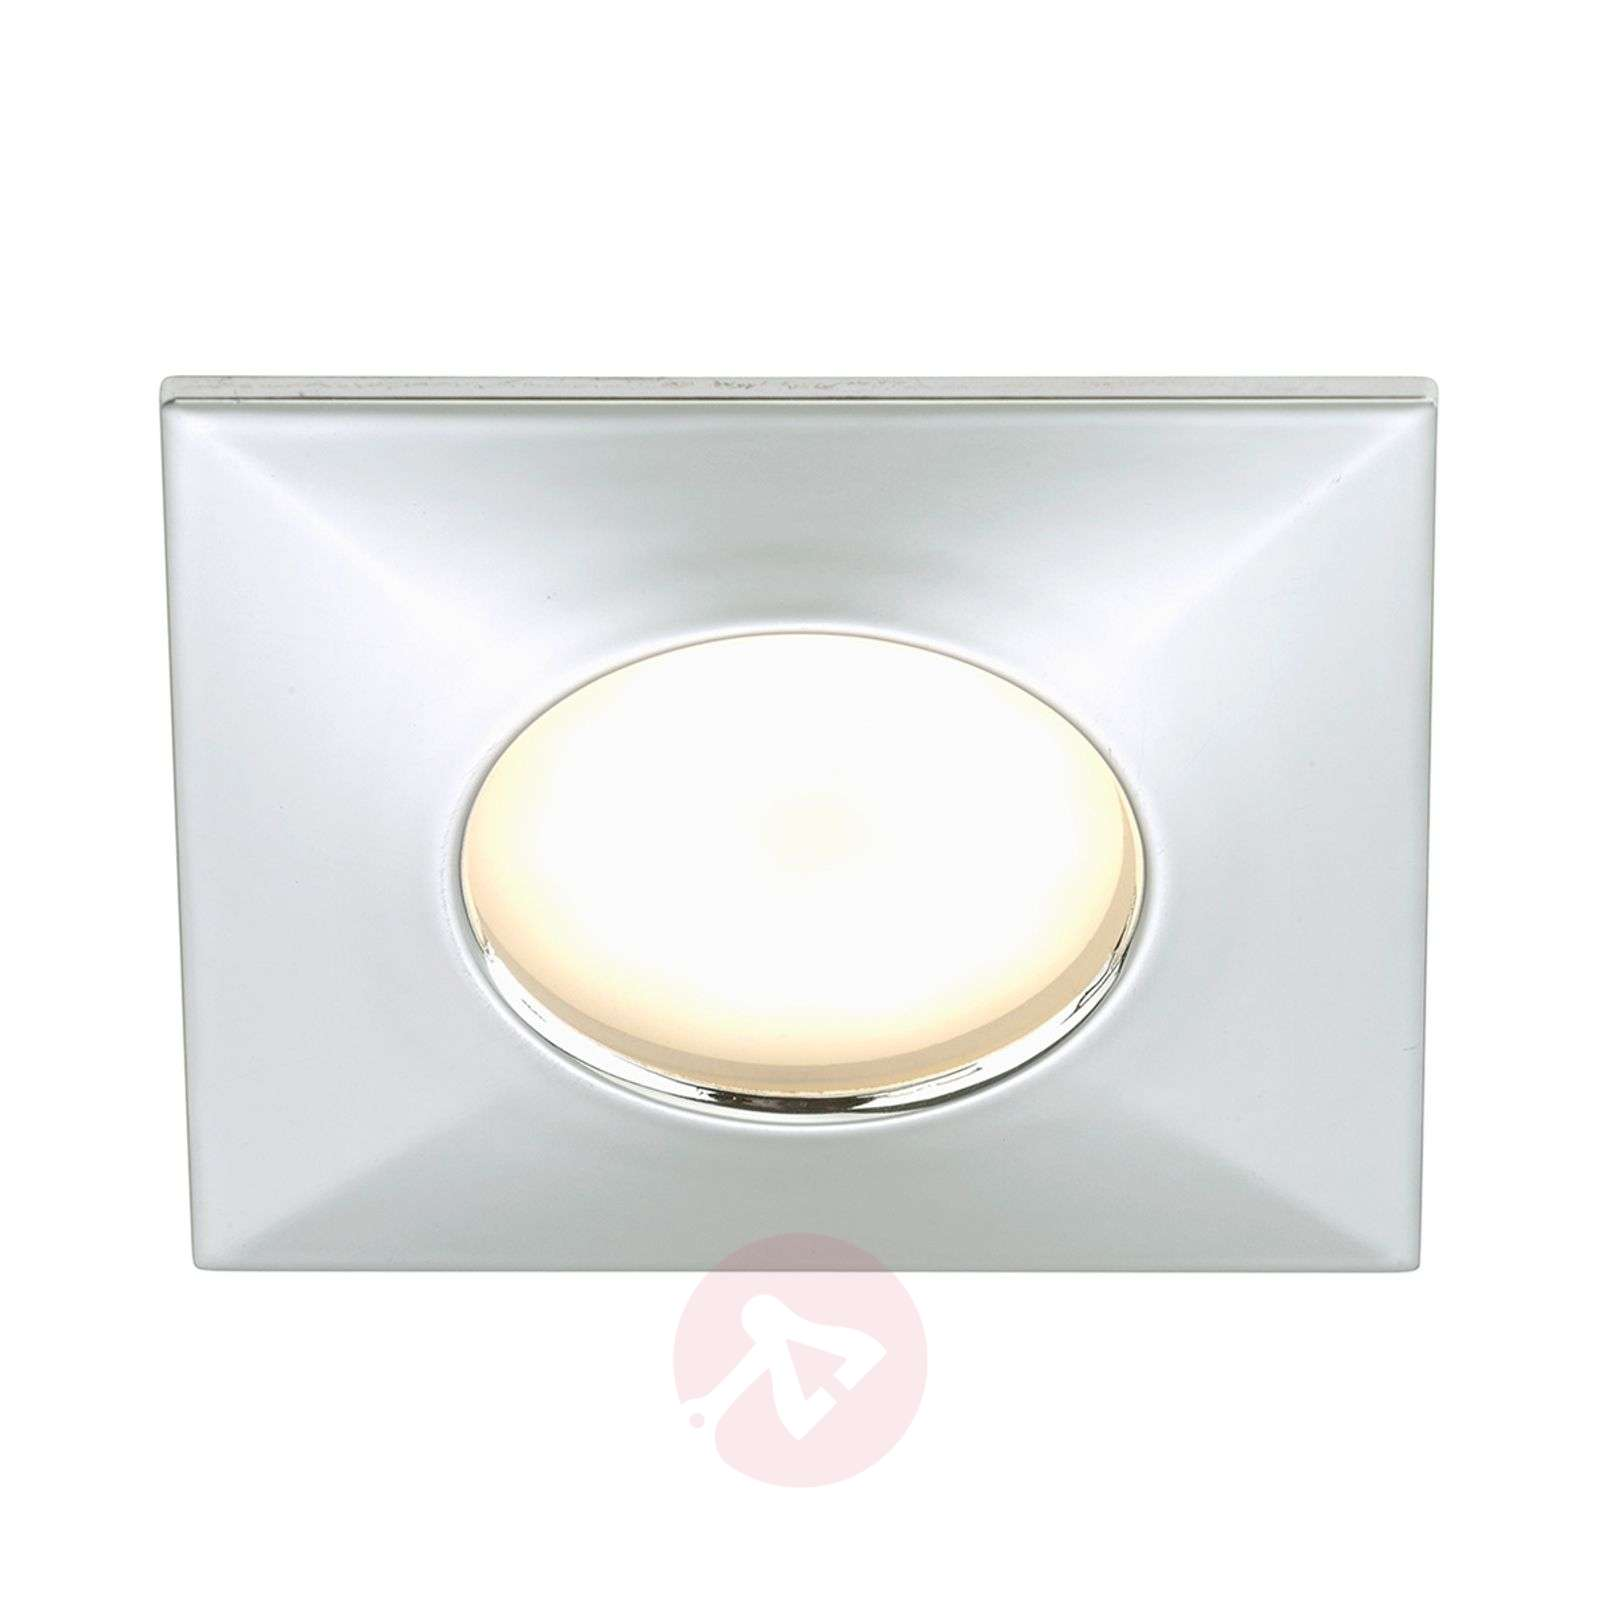 Spot encastré LED Luca IP44 nickel-1510233X-07